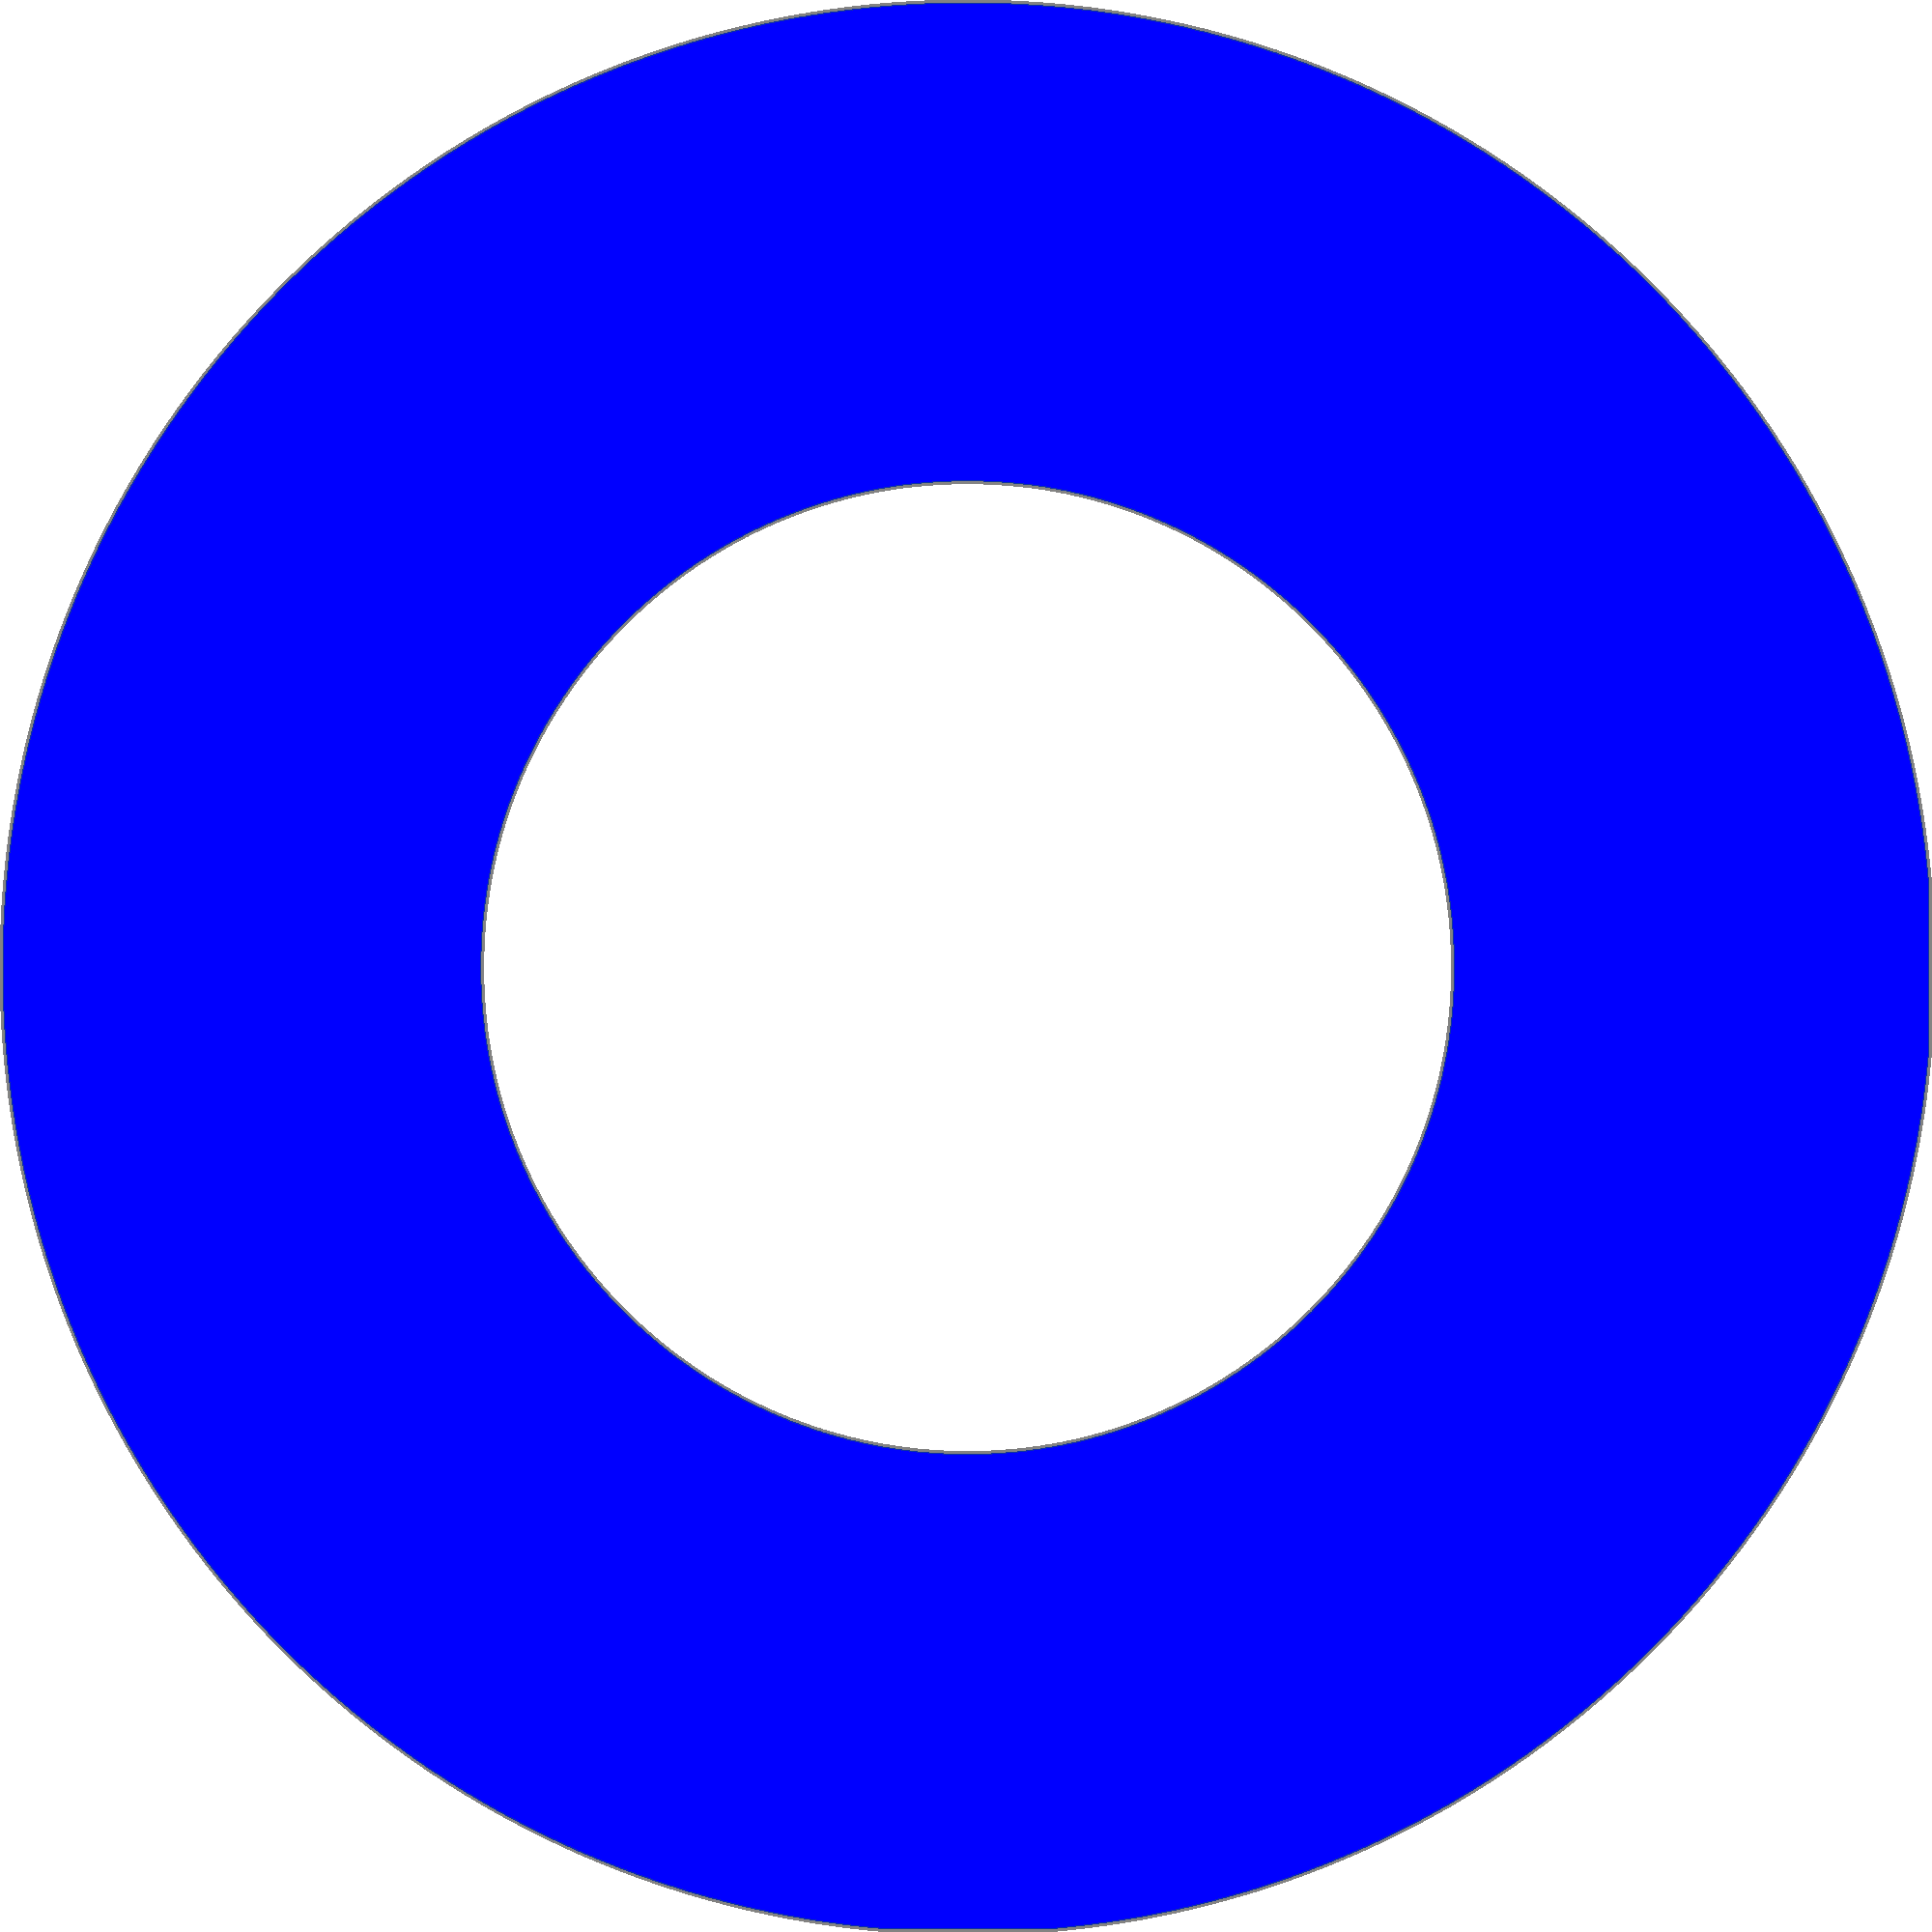 File:Blue circle.png.